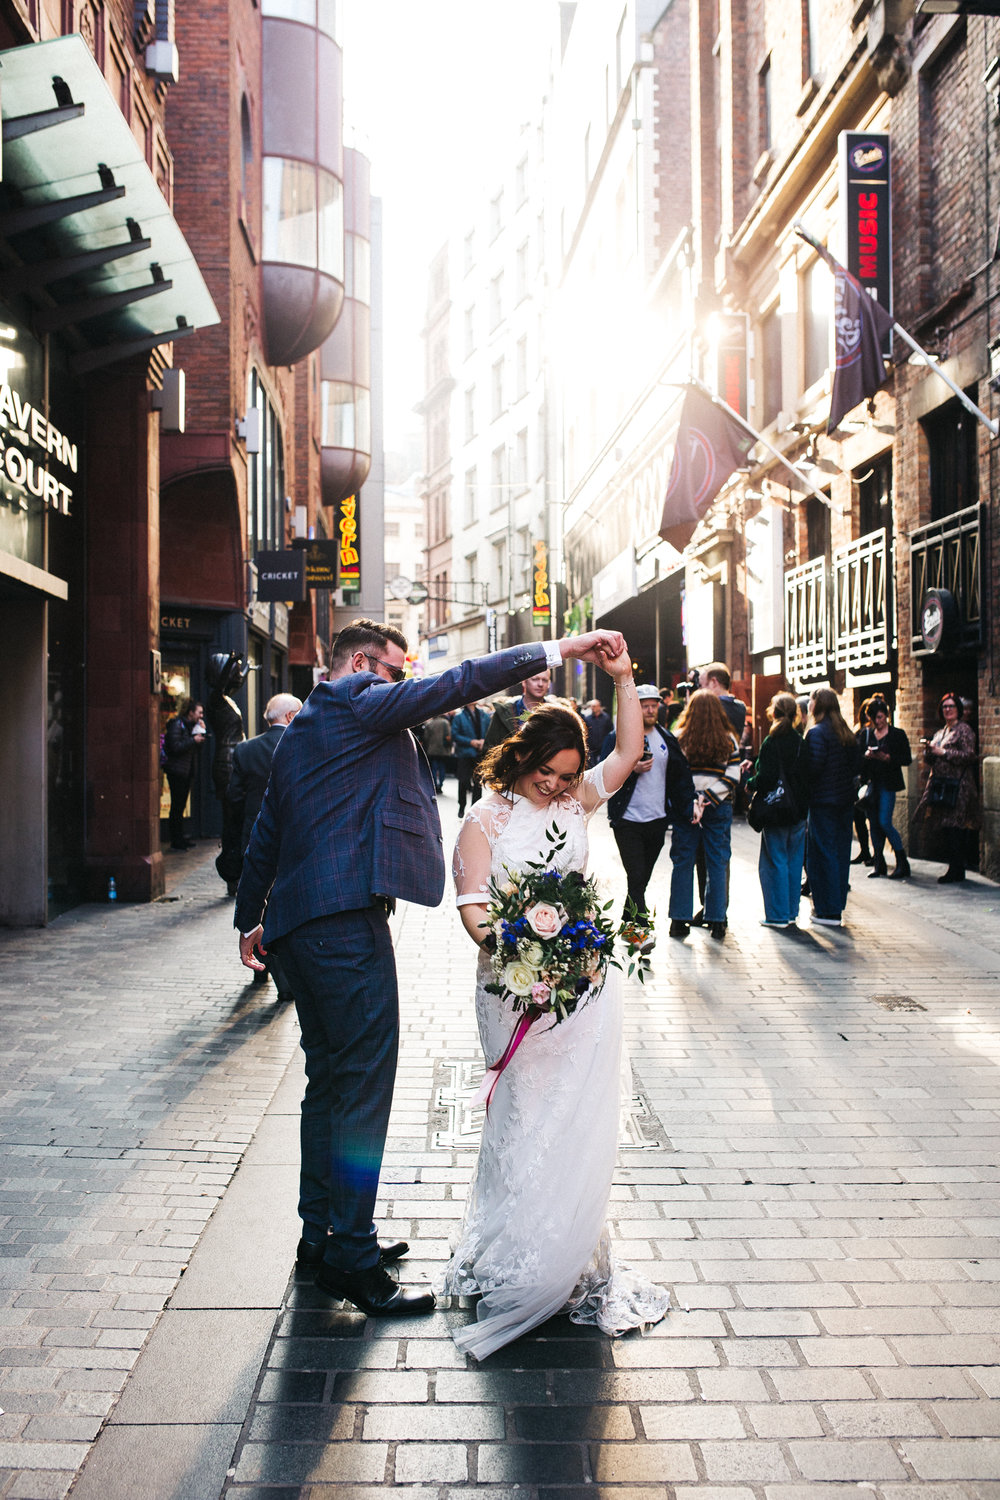 the groom twirls his bride on Matthew street in liverpool. ceremony at st georges hall liverpool, oh me oh my wedding reception, north west wedding photographer